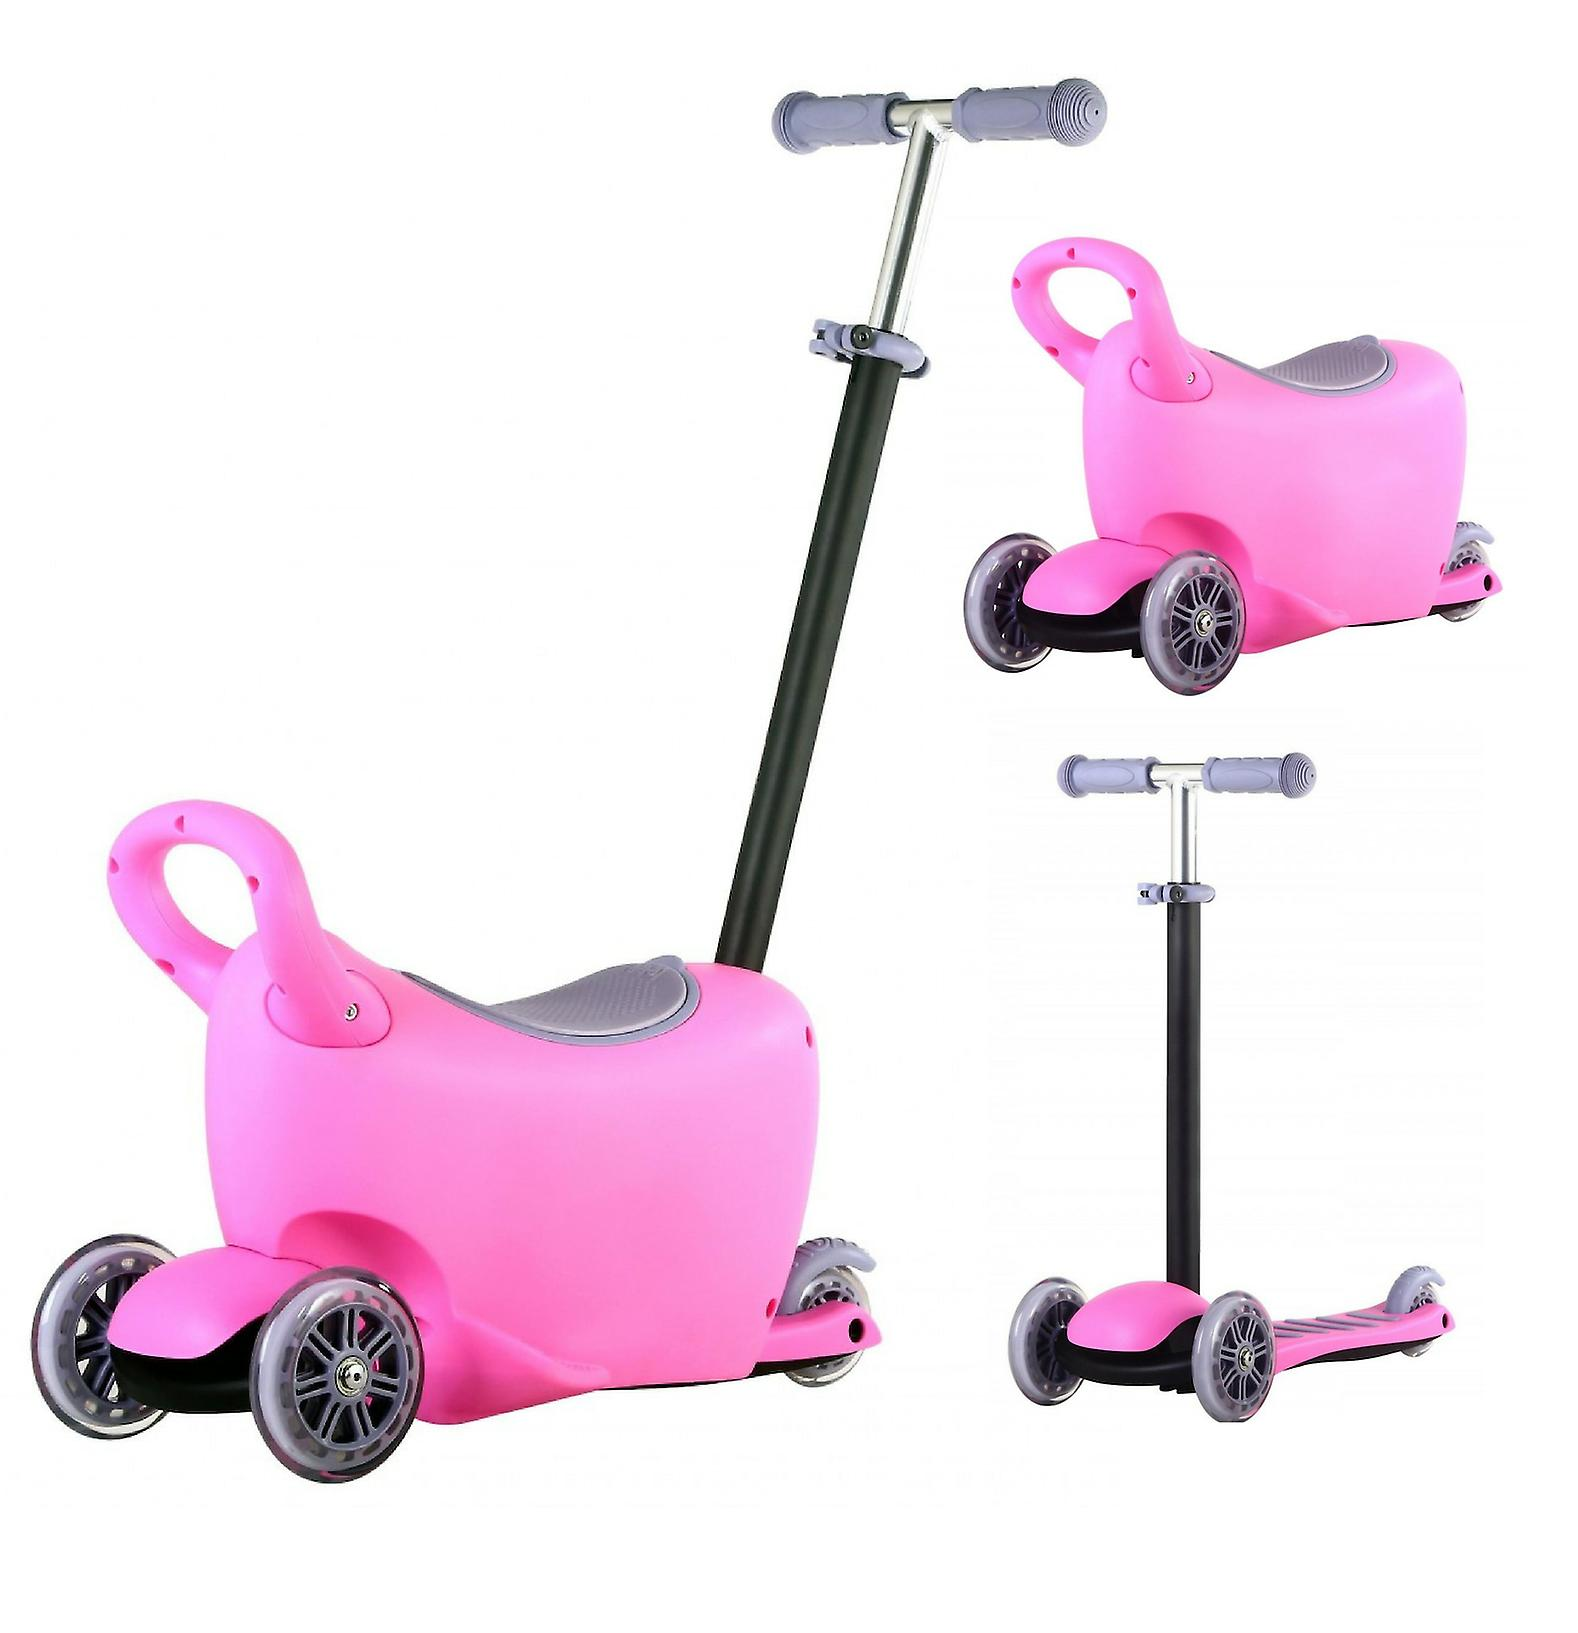 Rideontoys4u 3 Stages 3in1 Light Up Scooter With Storage Box Pink Fruugo No